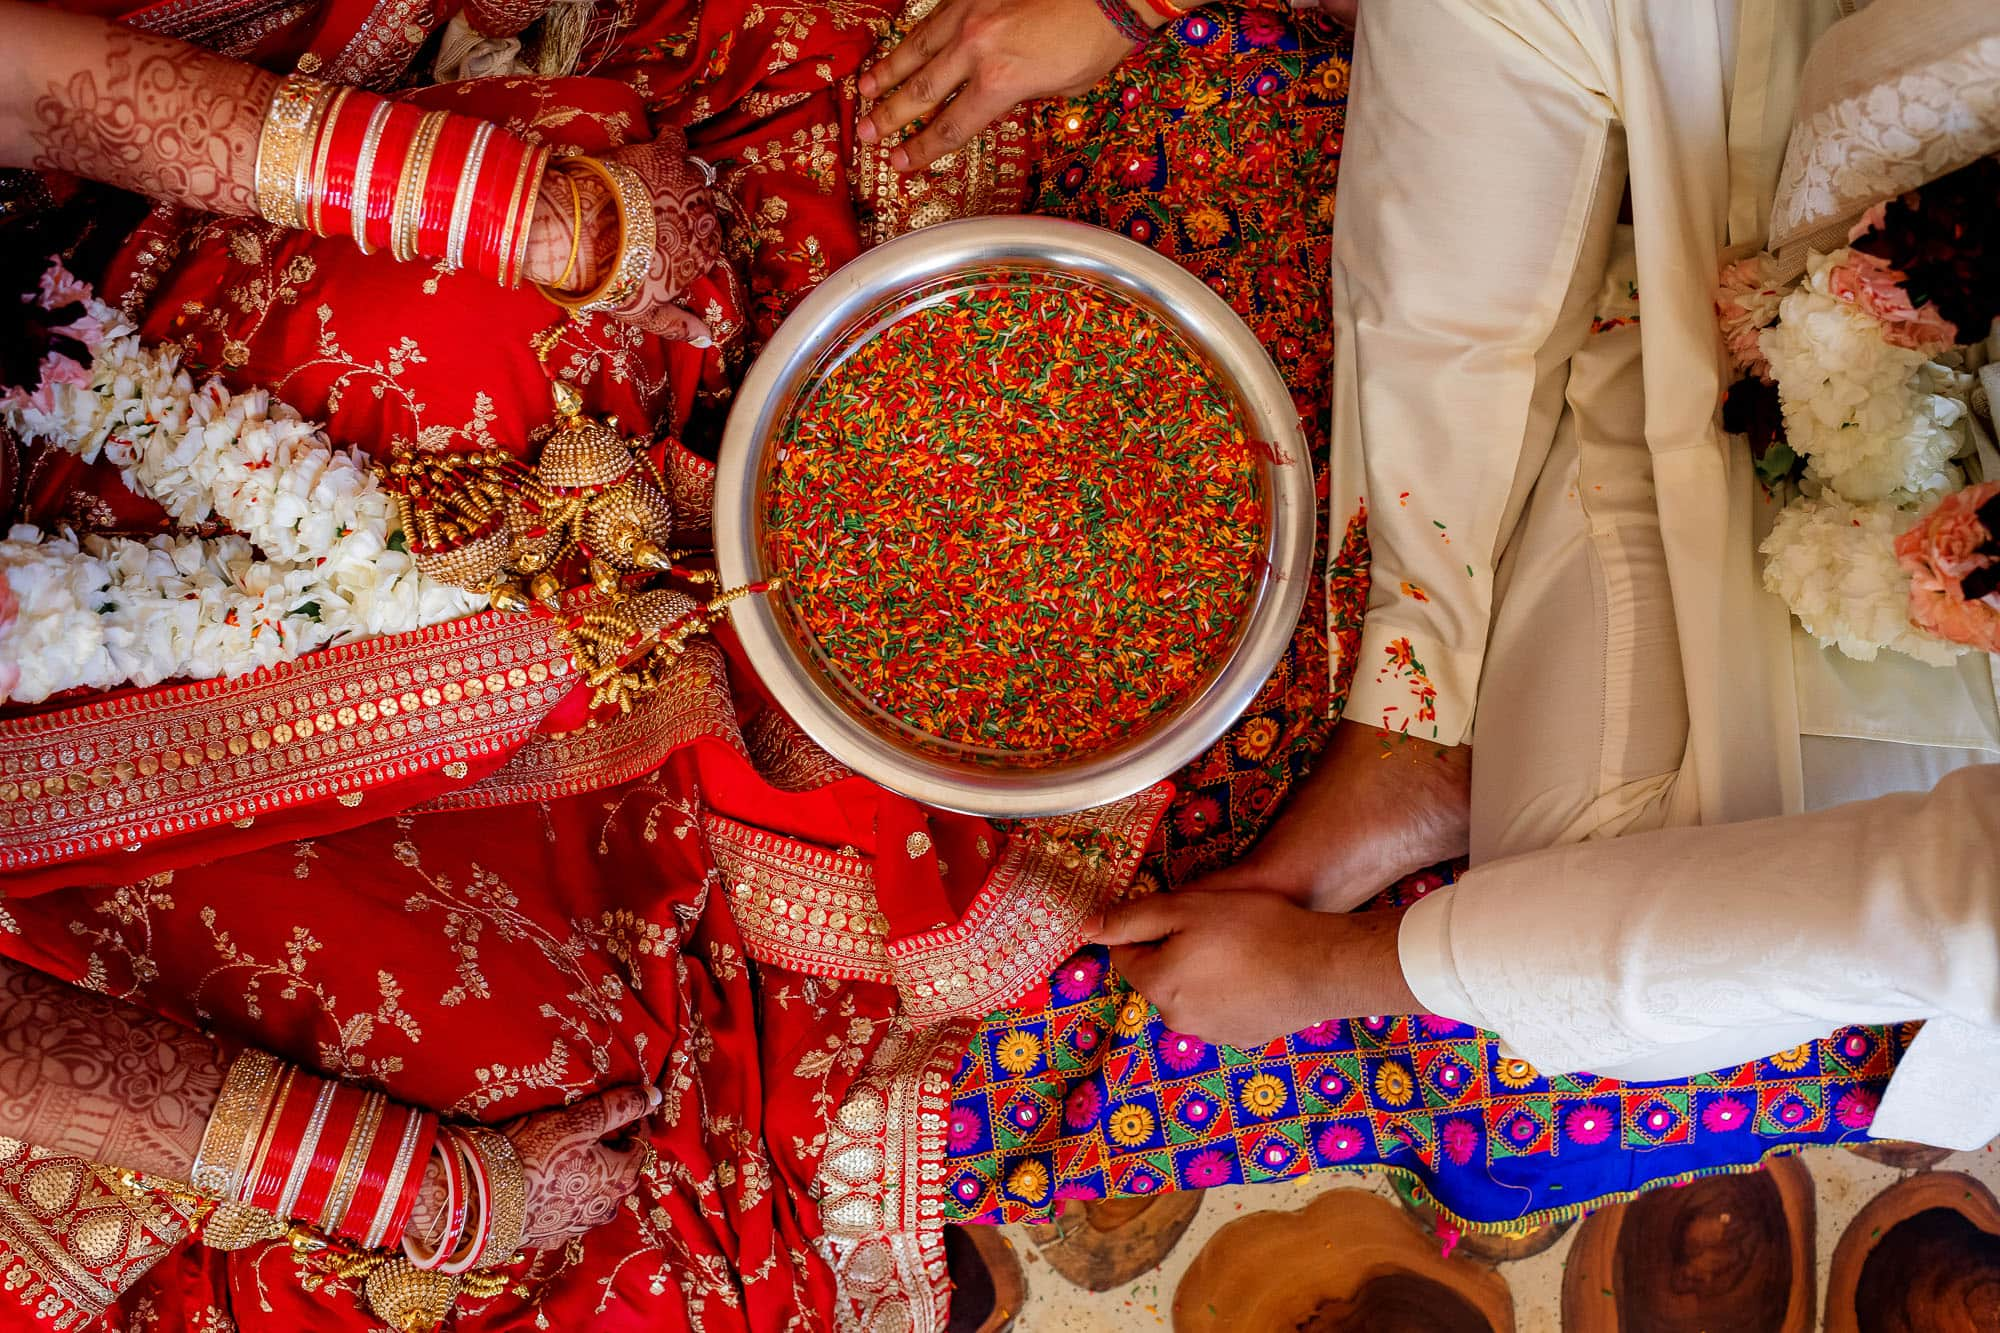 Finding the coin in the bowl of rice, Hindu tradition